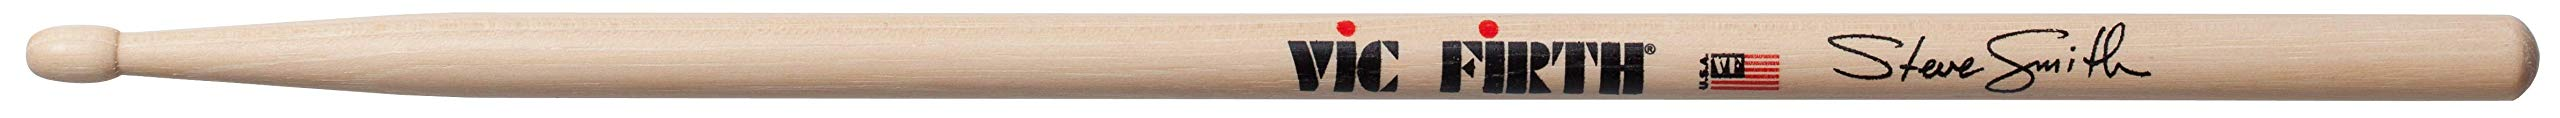 Vic Firth Signature Series -- Steve Smith by Vic Firth